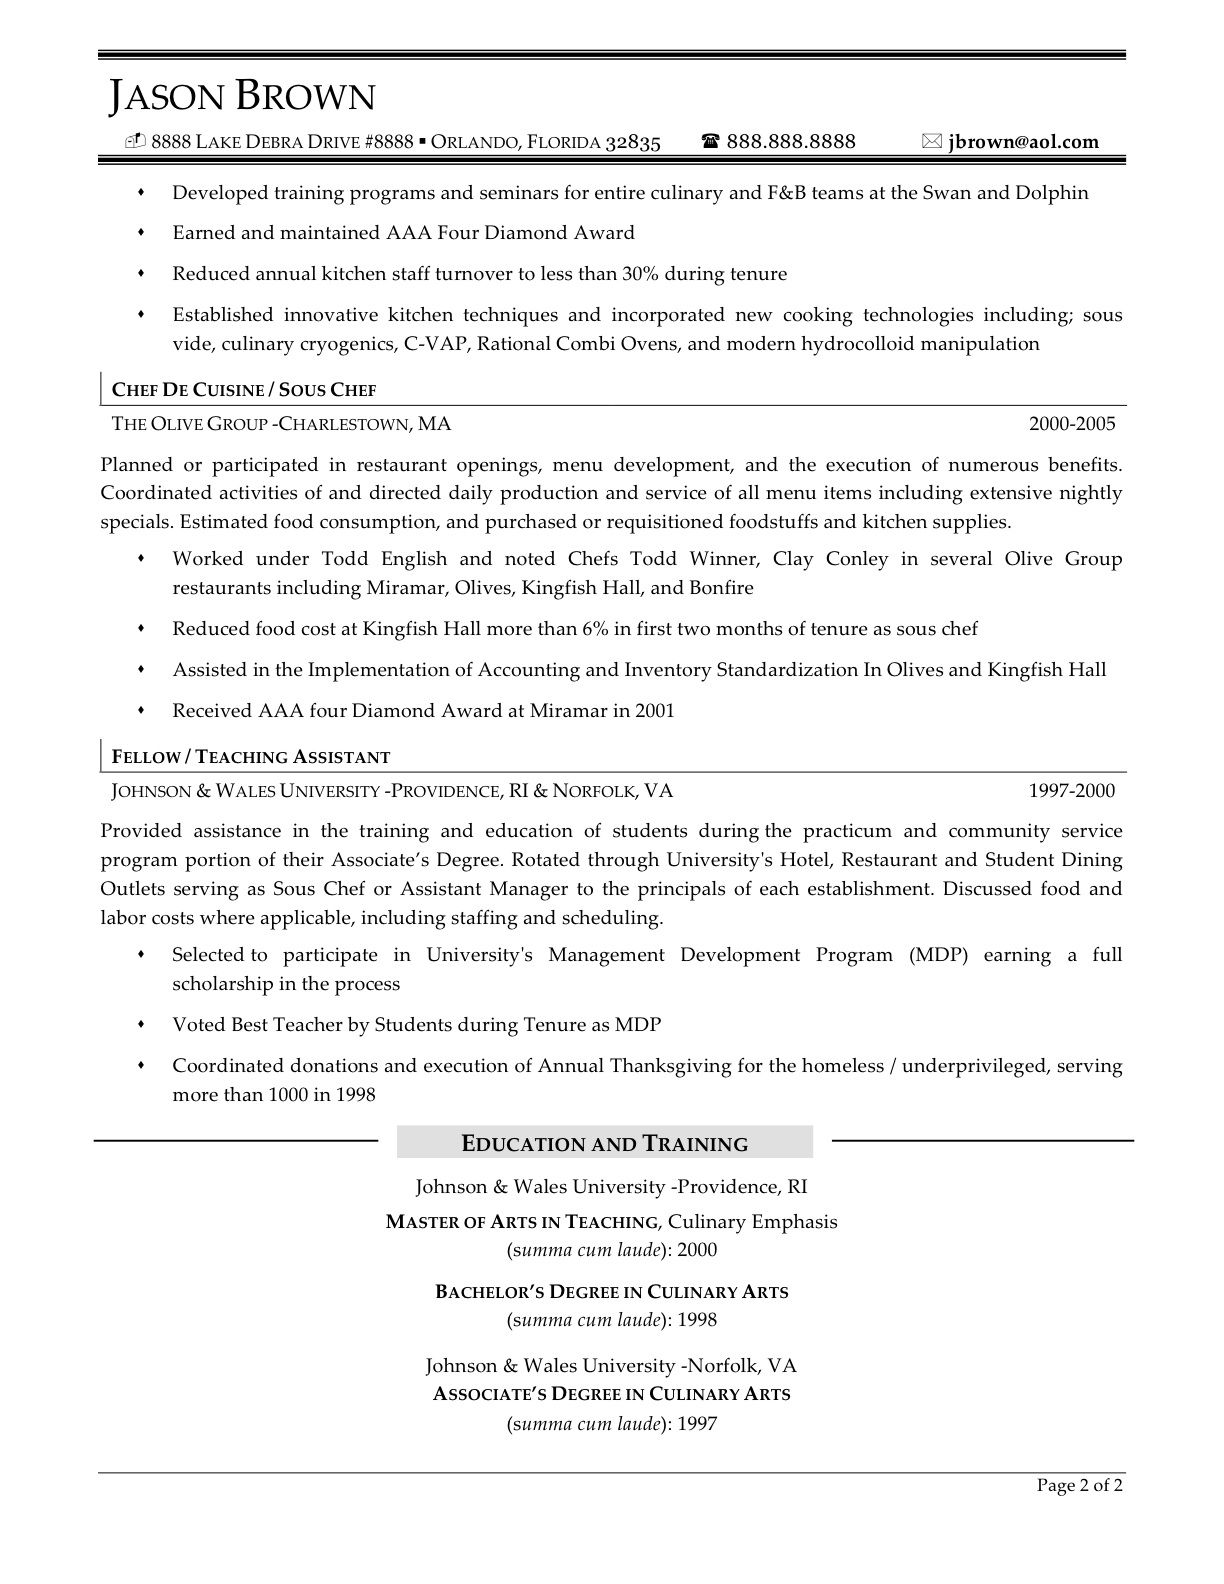 chef cook resume examples httpwwwjobresumewebsitechef